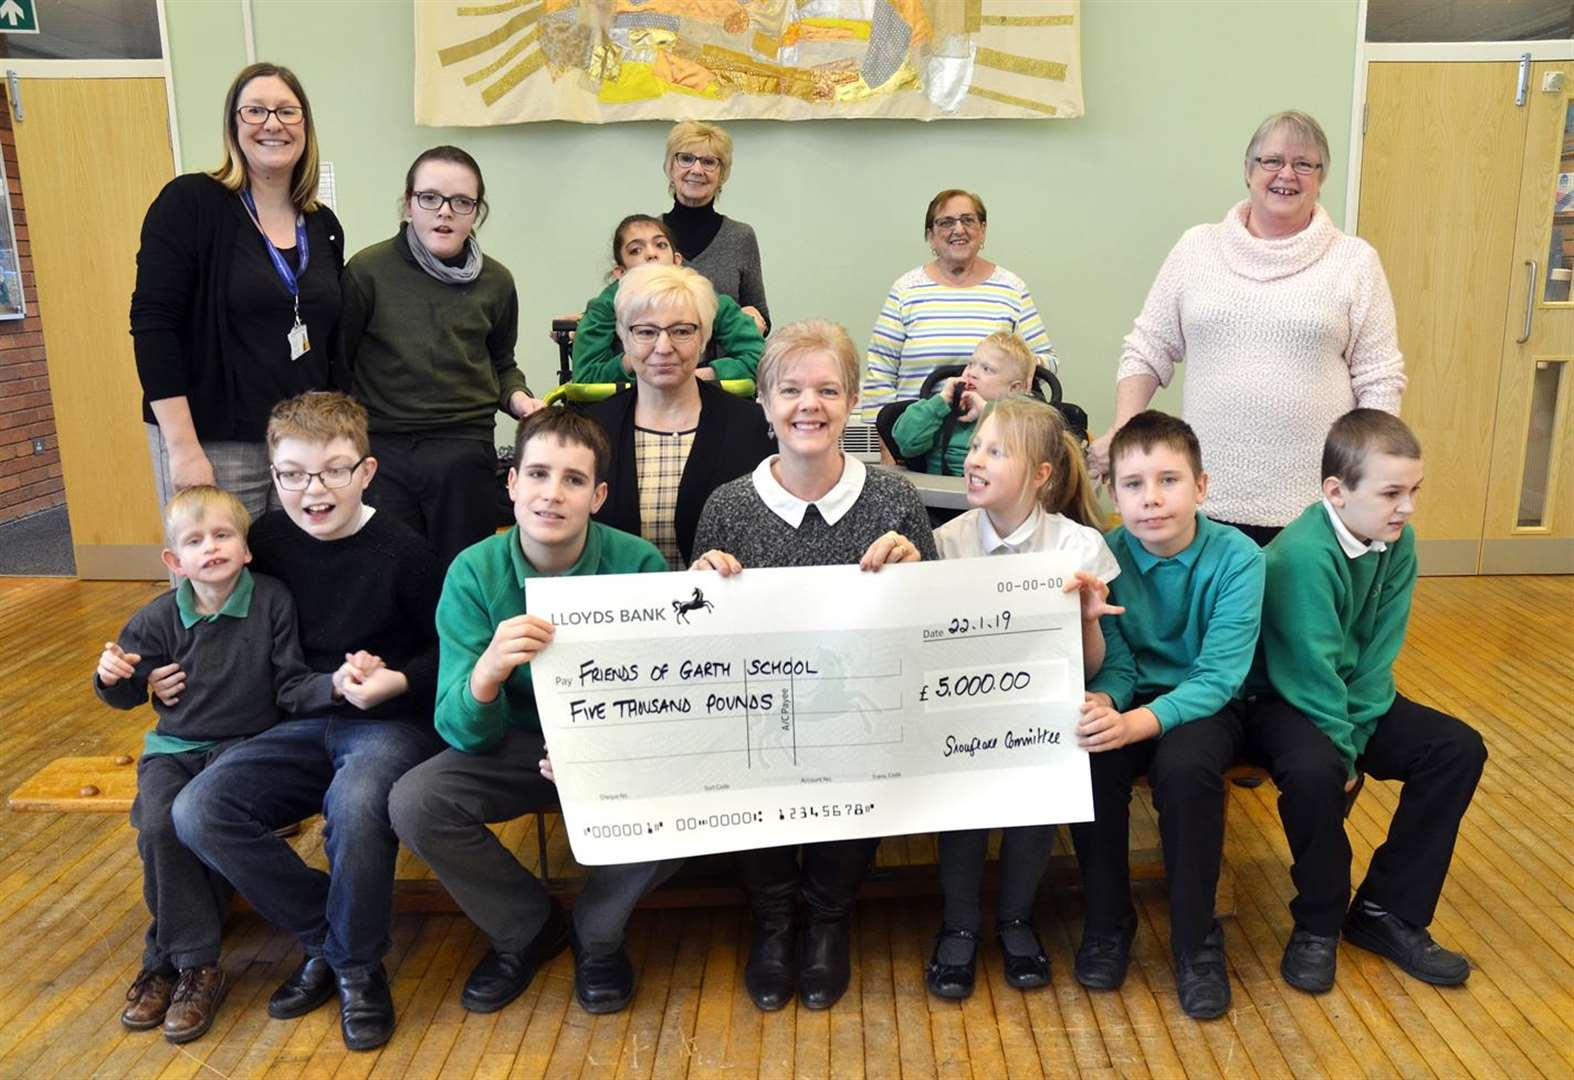 Slimmers raise cash for Garth School